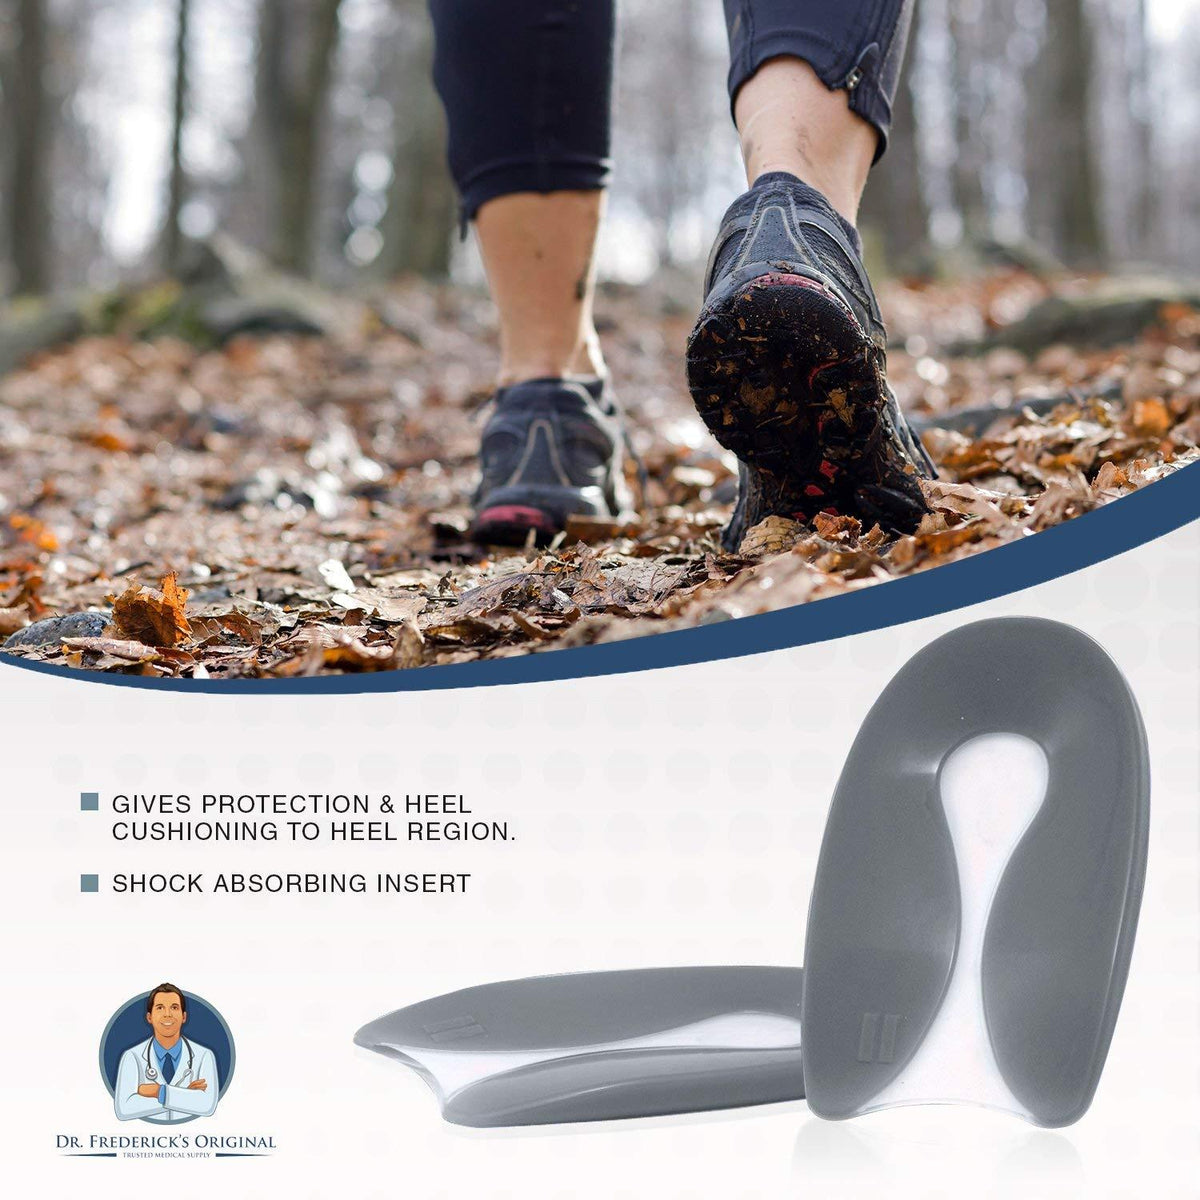 Dr. Frederick's Original Advanced Heel Protectors -- 2 Pieces - for Heel Pain, Plantar Fasciitis, and Heel Spurs Foot Pain Dr. Frederick's Original